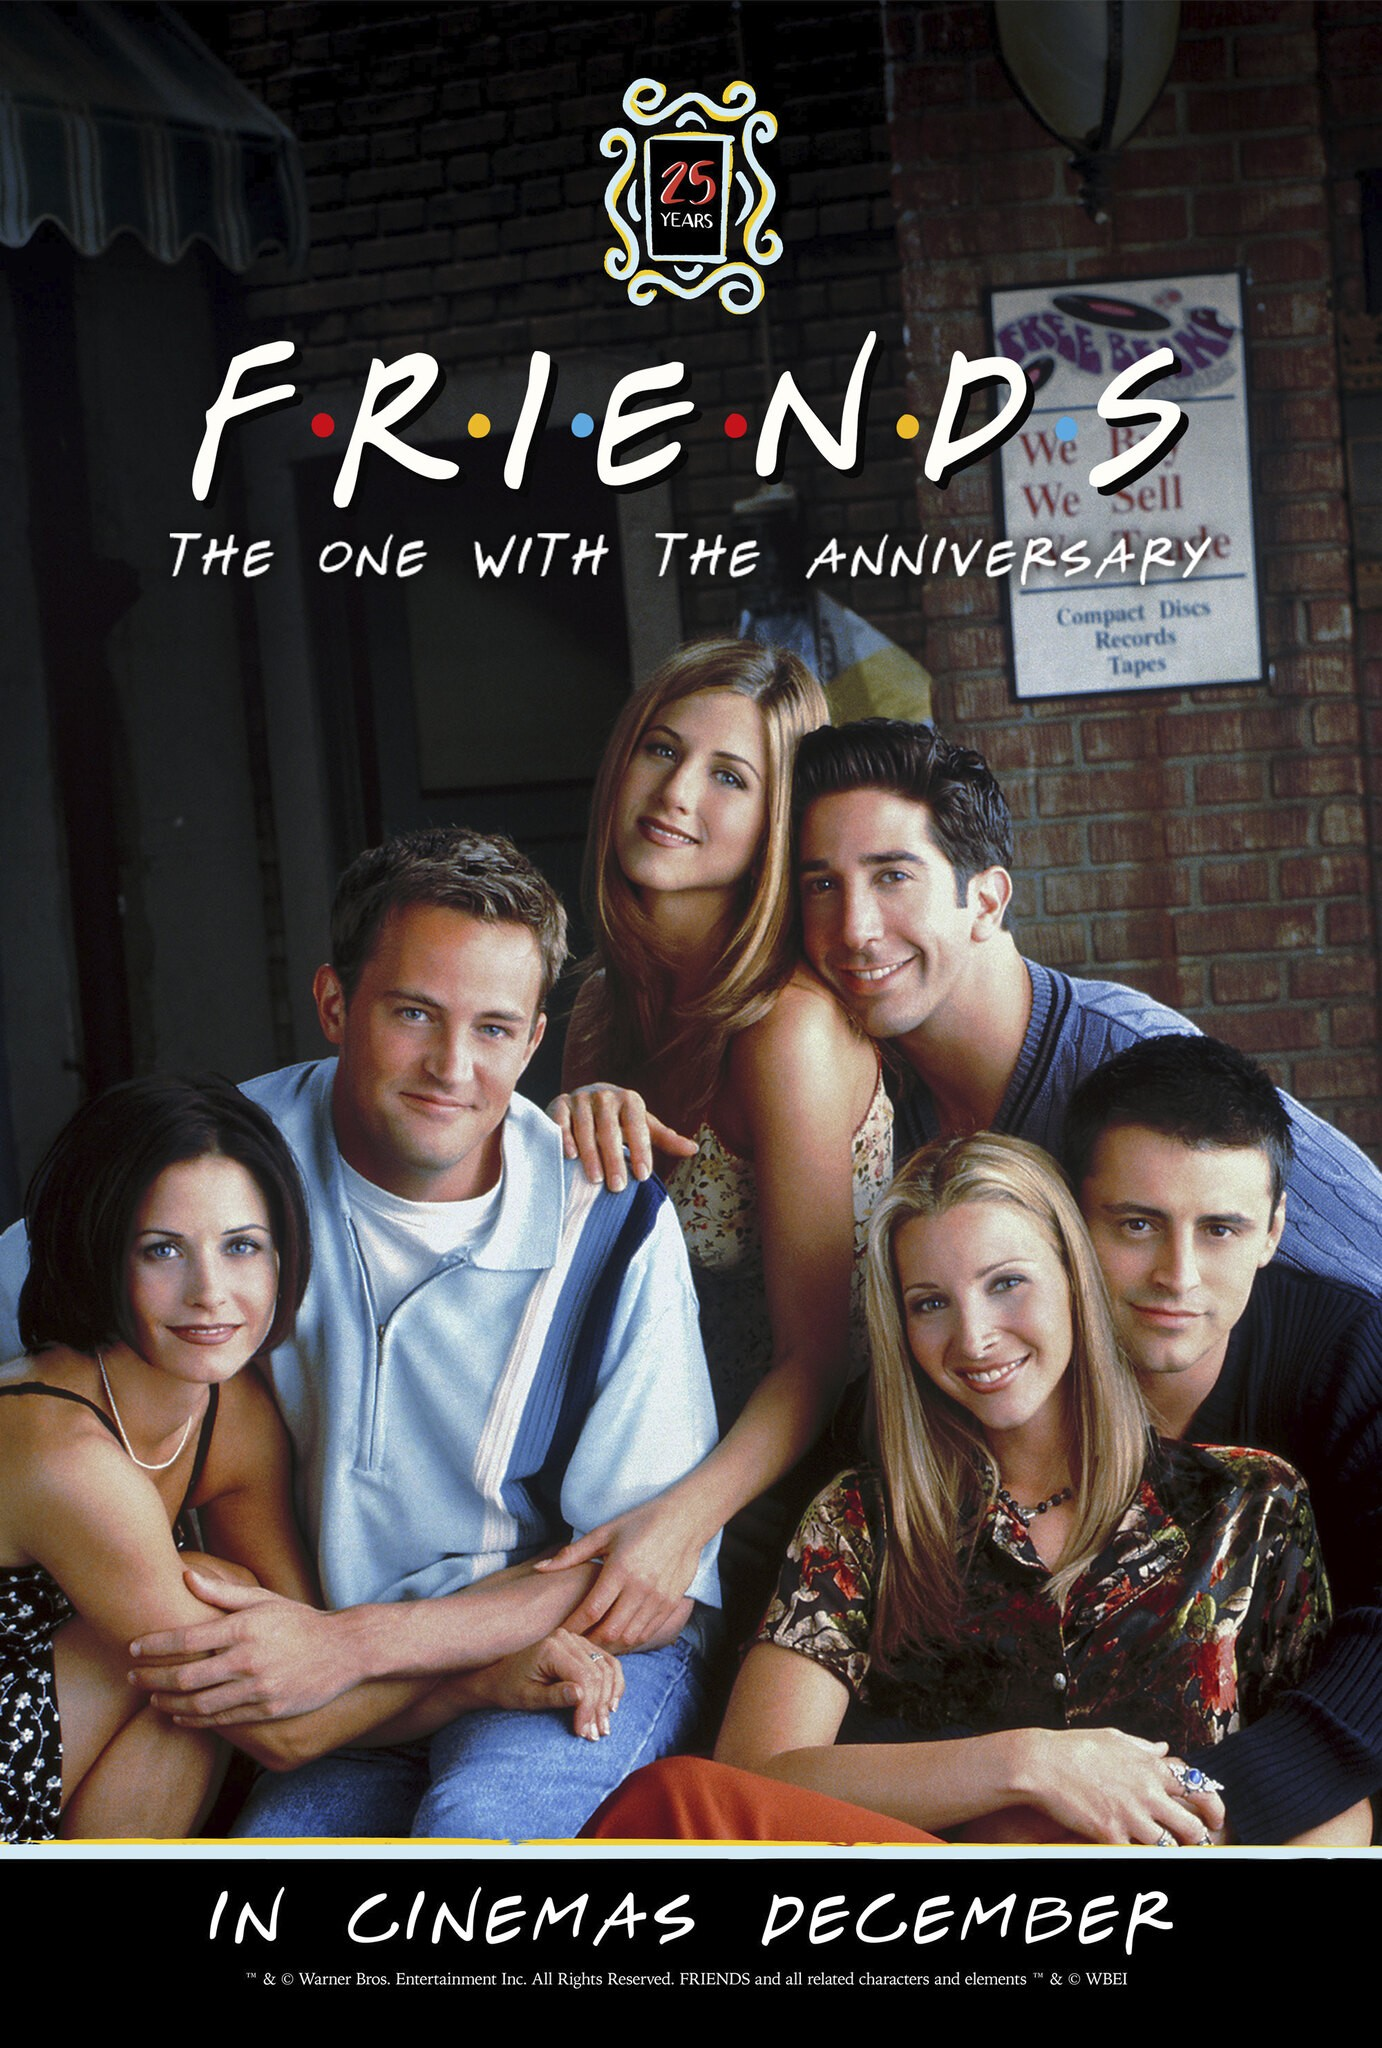 FRIENDS 25 : THE ONE WITH THE ANNIVERSARY